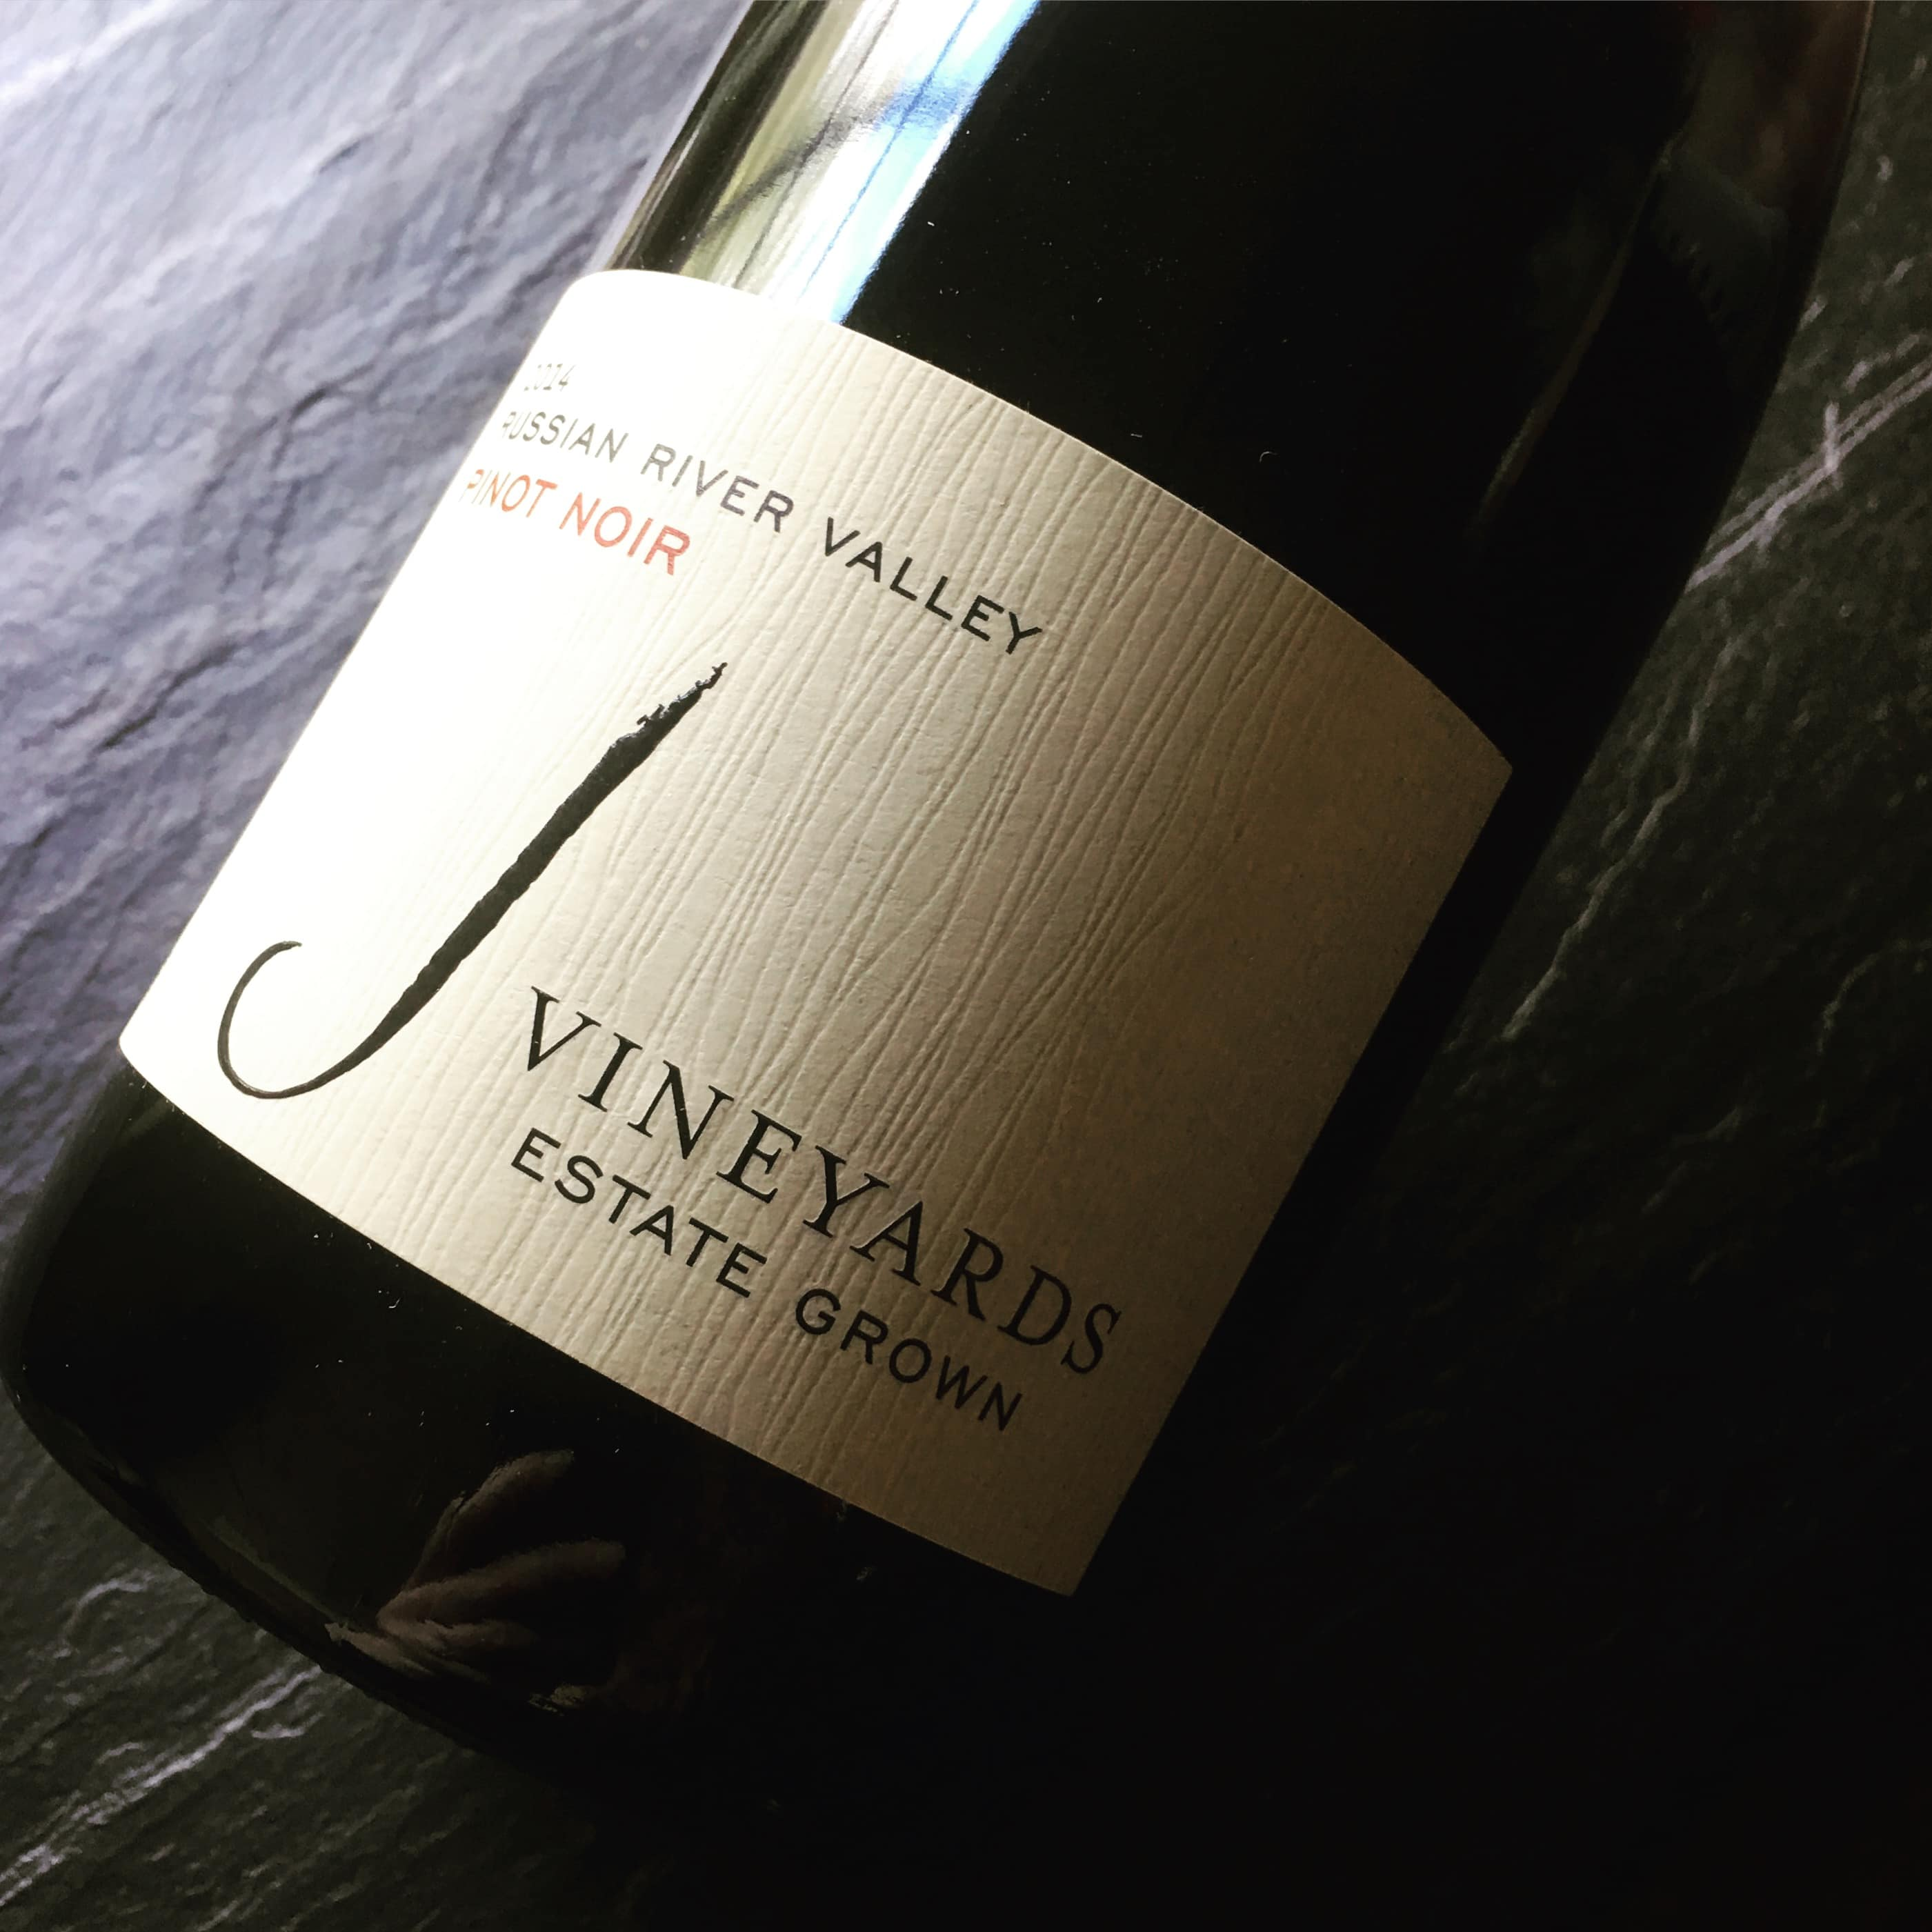 J Vineyards Estate Grown Pinot Noir 2014